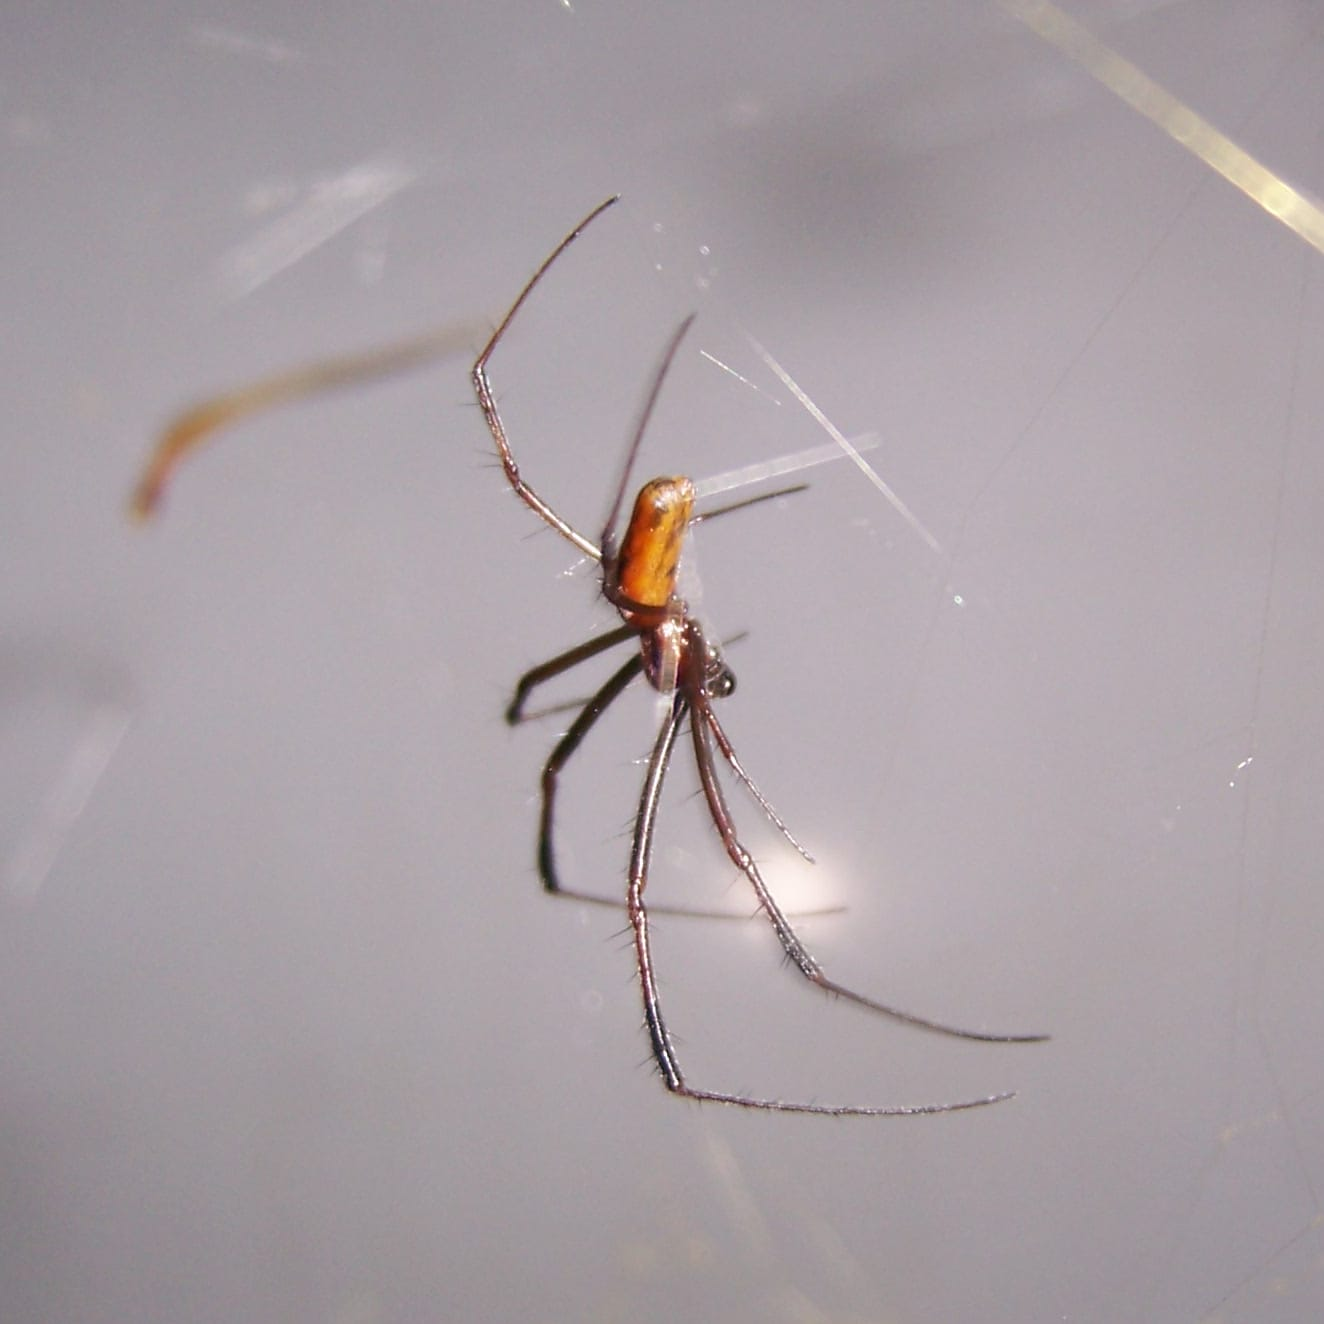 Picture of Trichonephila clavipes (Golden Silk Orb-weaver) - Male - Lateral